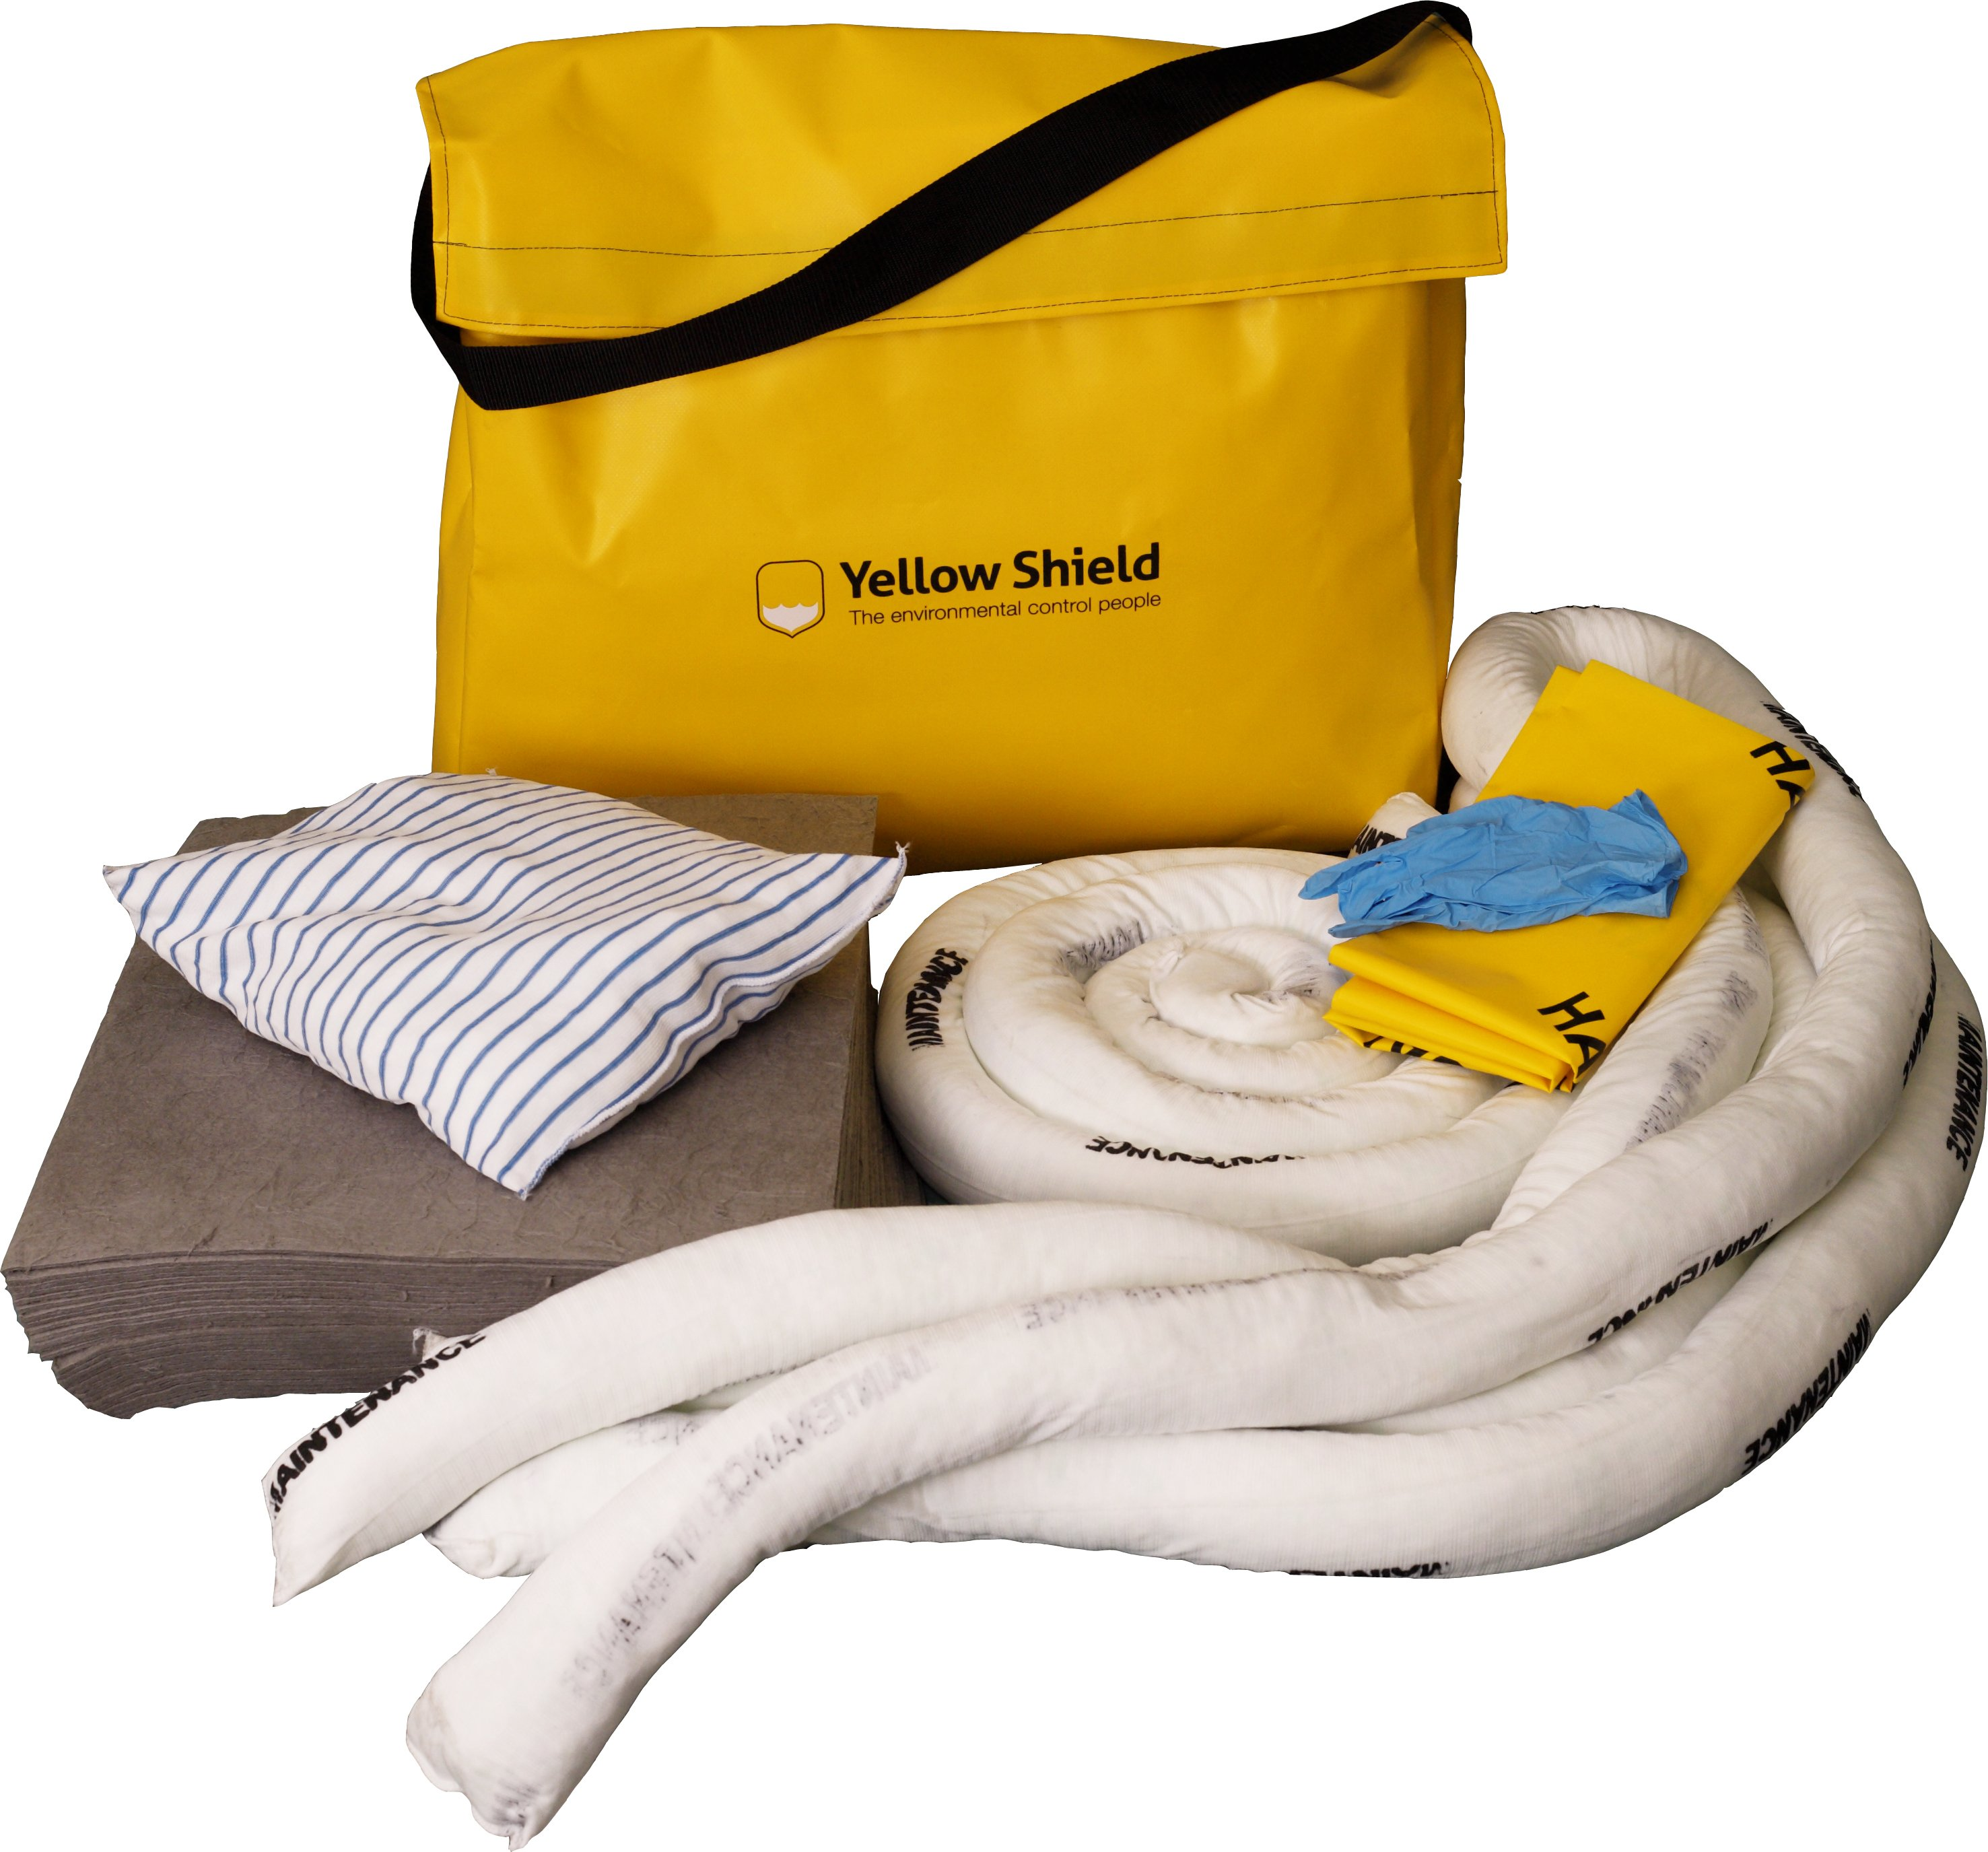 Shoulder bag spill kit